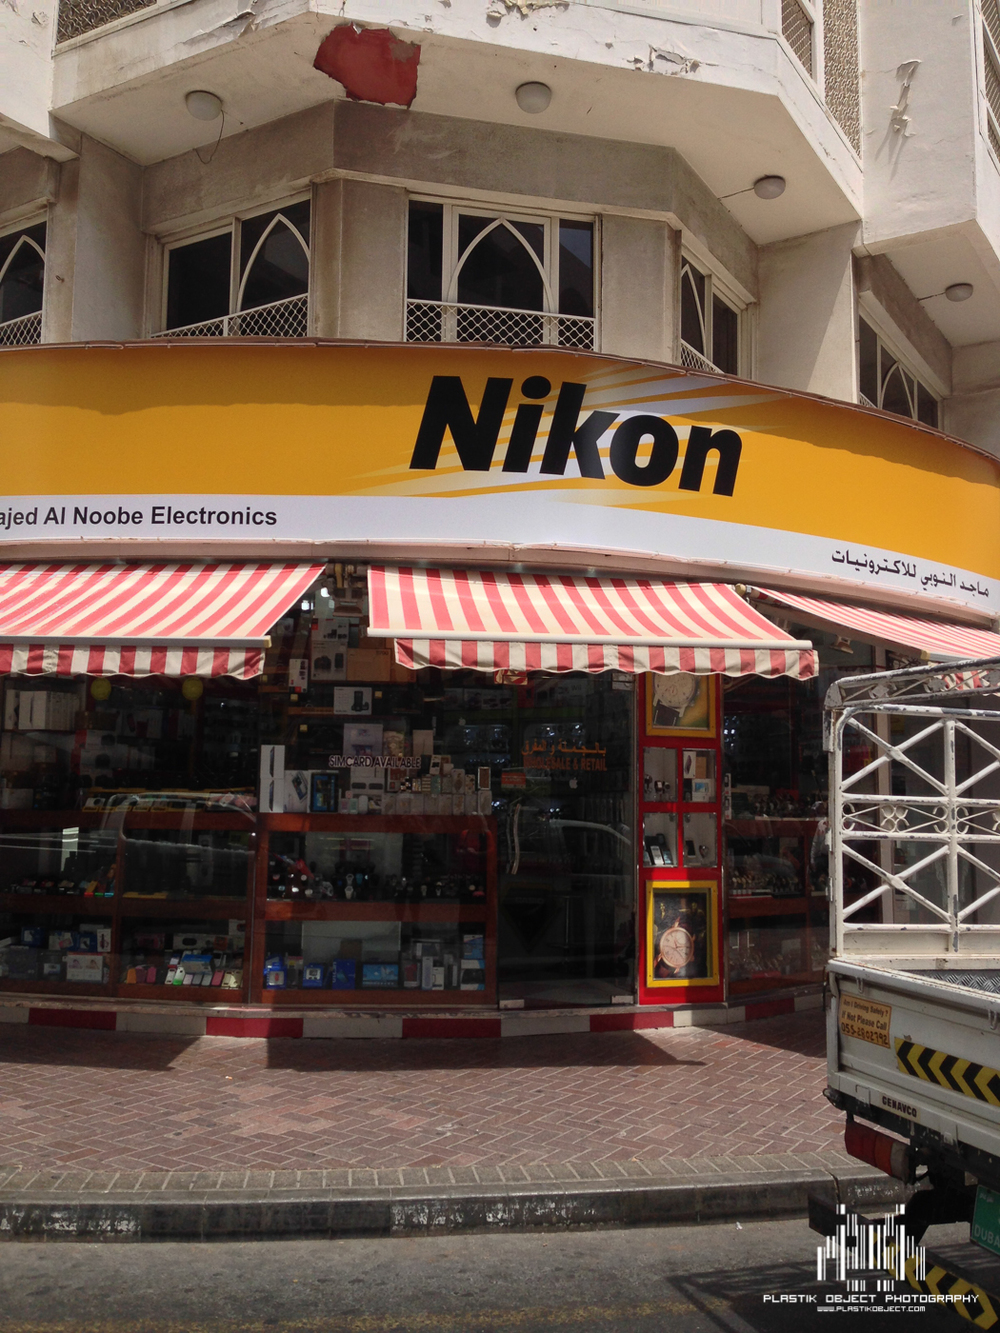 I did find a Nikon store, but not the lenses I was looking for.